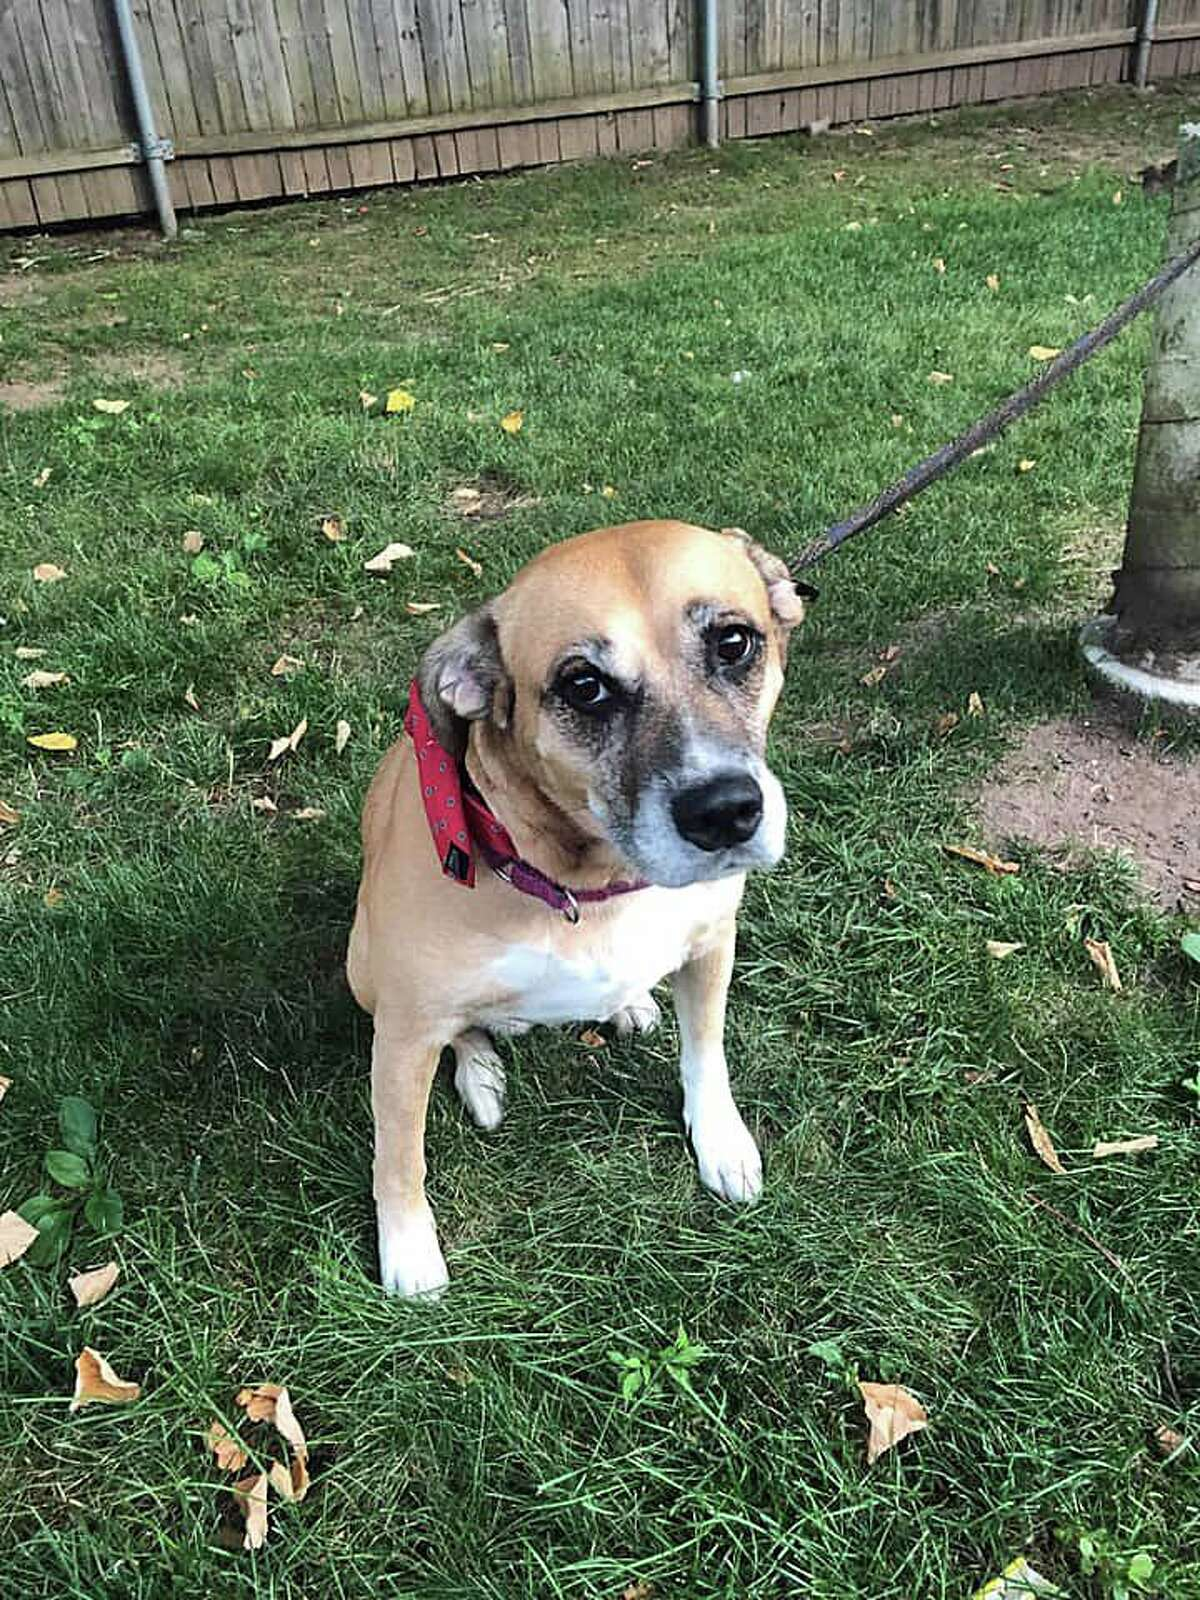 West Haven Animal Control said a dog was found tied to a pole - with a necktie - at an apartment complex on Campbell Avenue on Saturday, July 27, 2019. The dog was tied to the pole on a warm and humid day with temperatures well into the 80s.